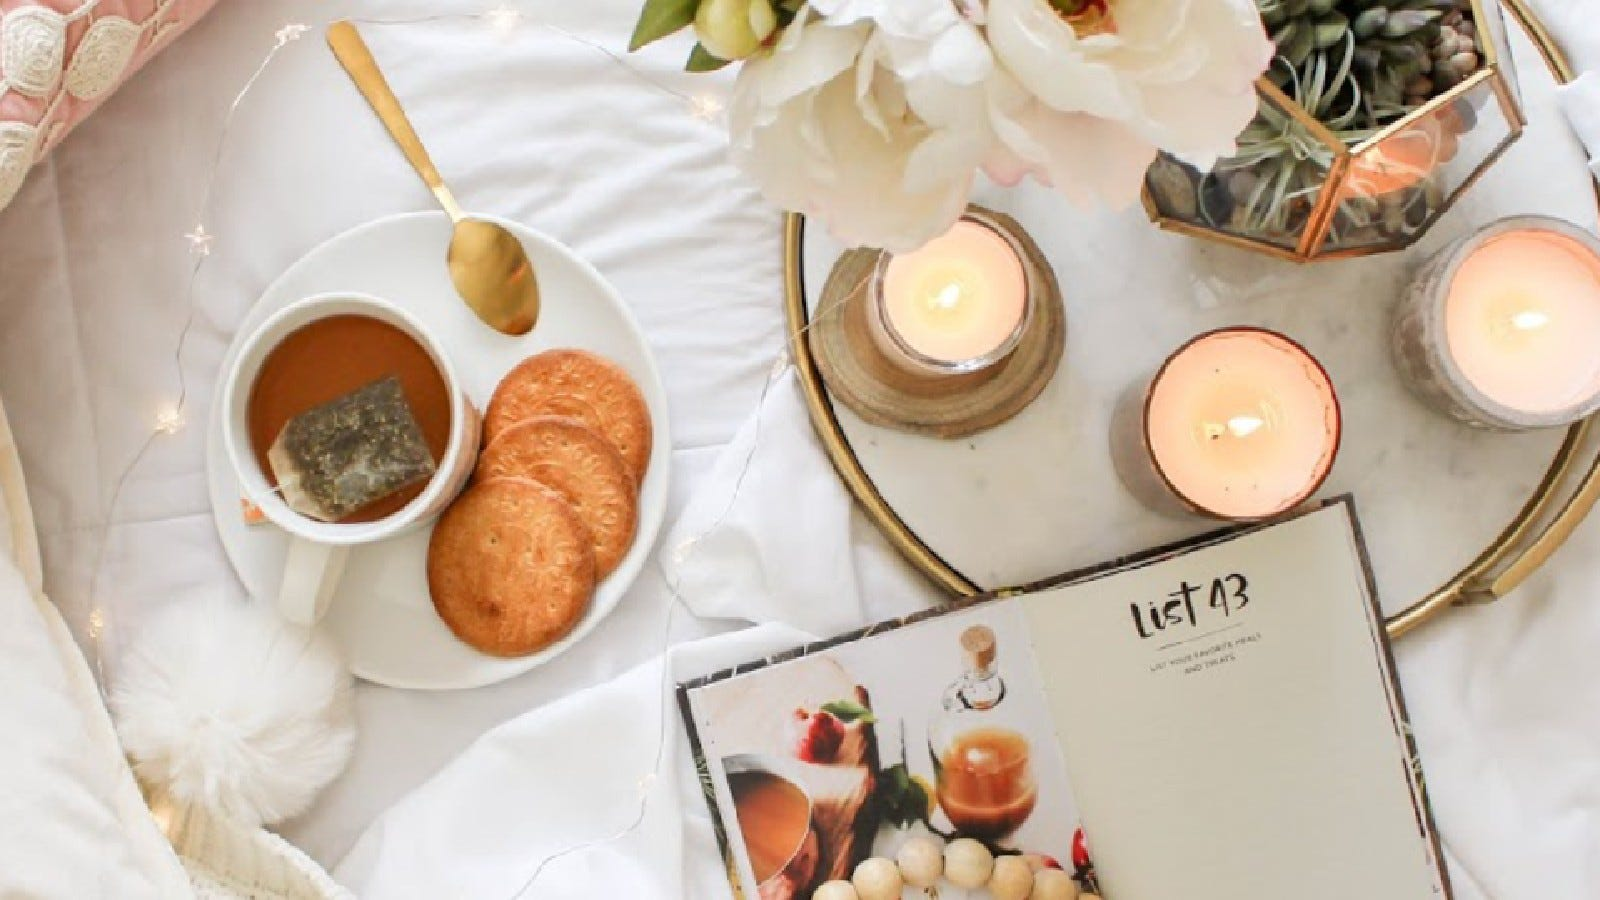 Candles, cookies, tea, and a journal from the Hygee Box.